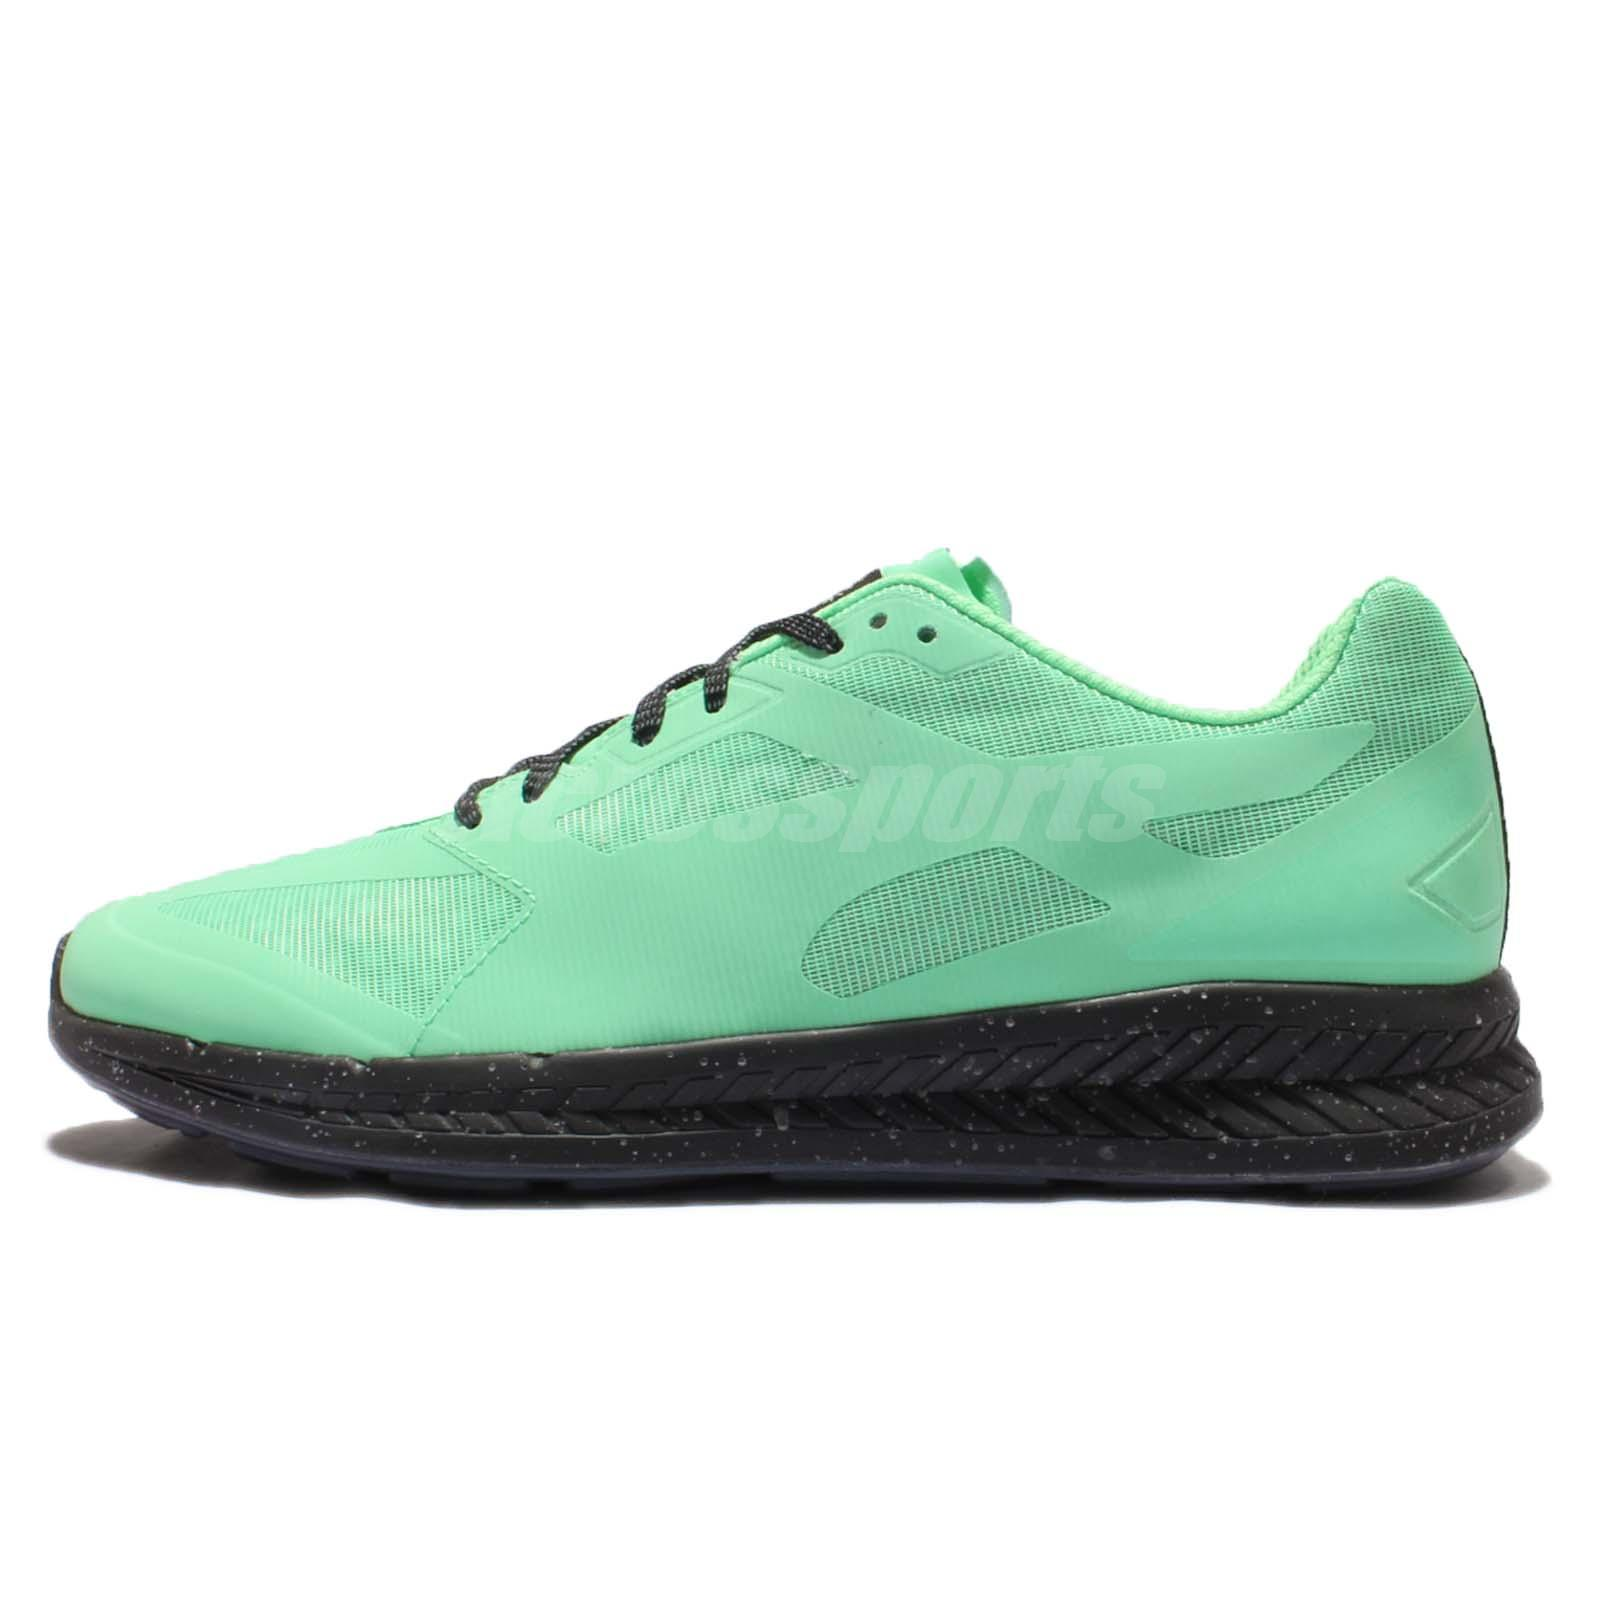 Puma X ICNY Ignite Ice Cream Pack Green Black Reflective Mens Running  361096-02